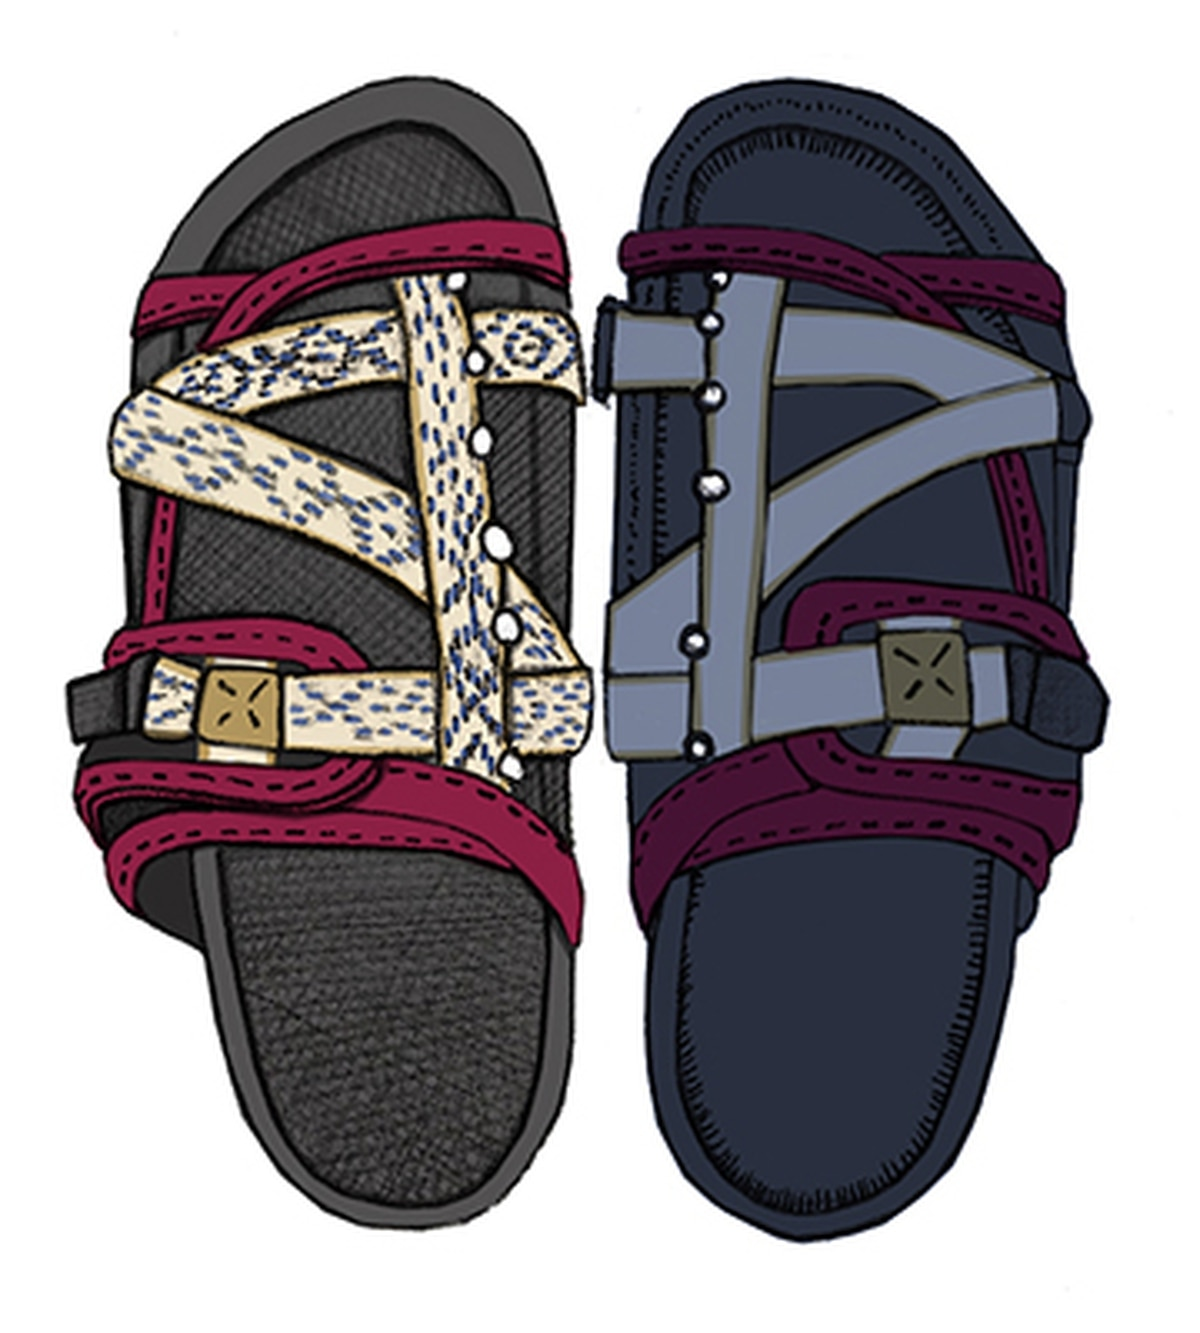 You'll see footwear, like these Christo FIL Tokyo Exclusive sandals, on Shelby Street.